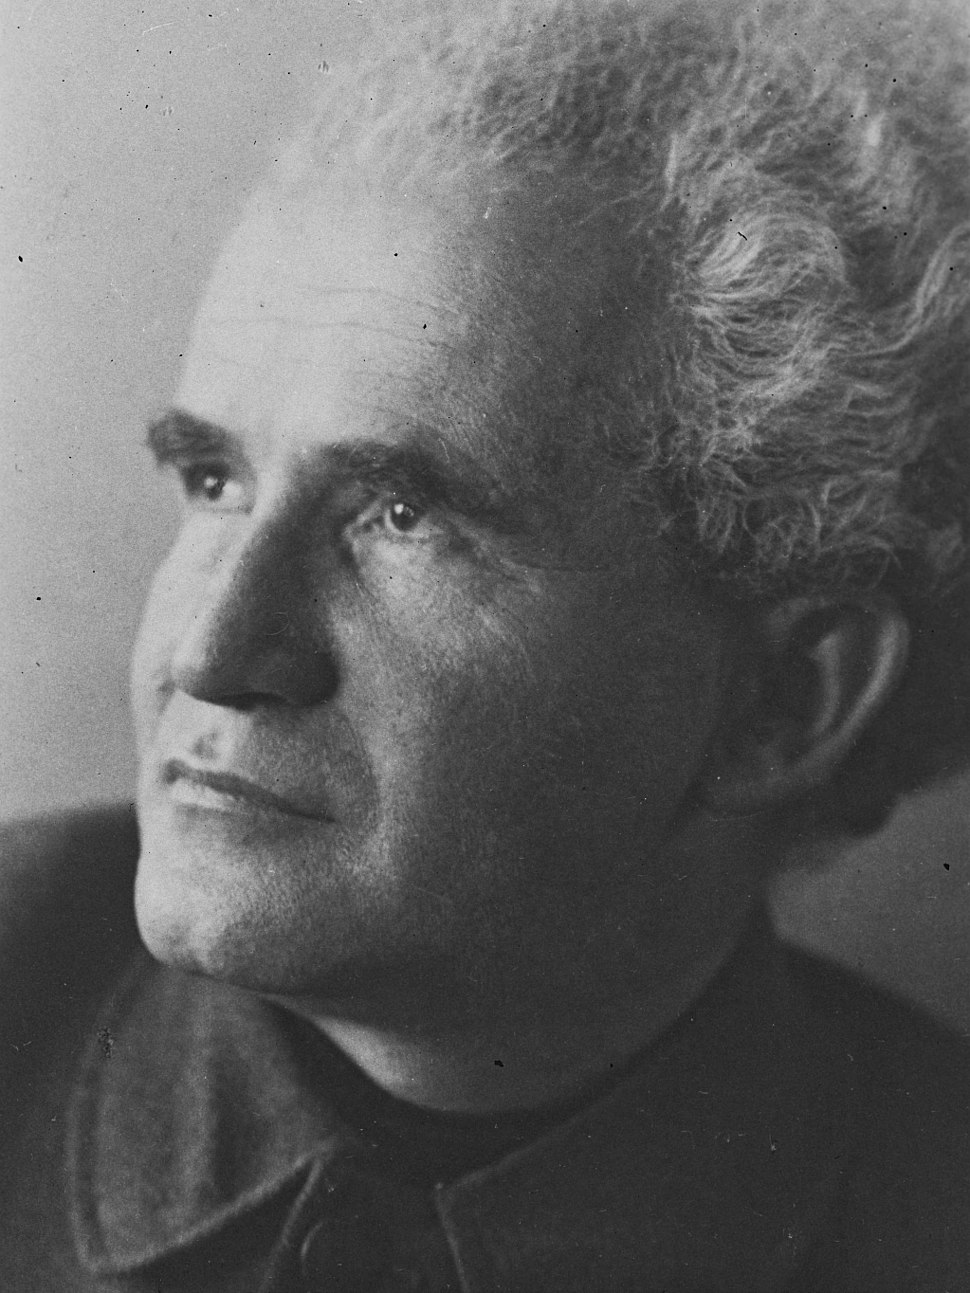 Flickr - Government Press Office (GPO) - Portrait of PM David Ben Gurion